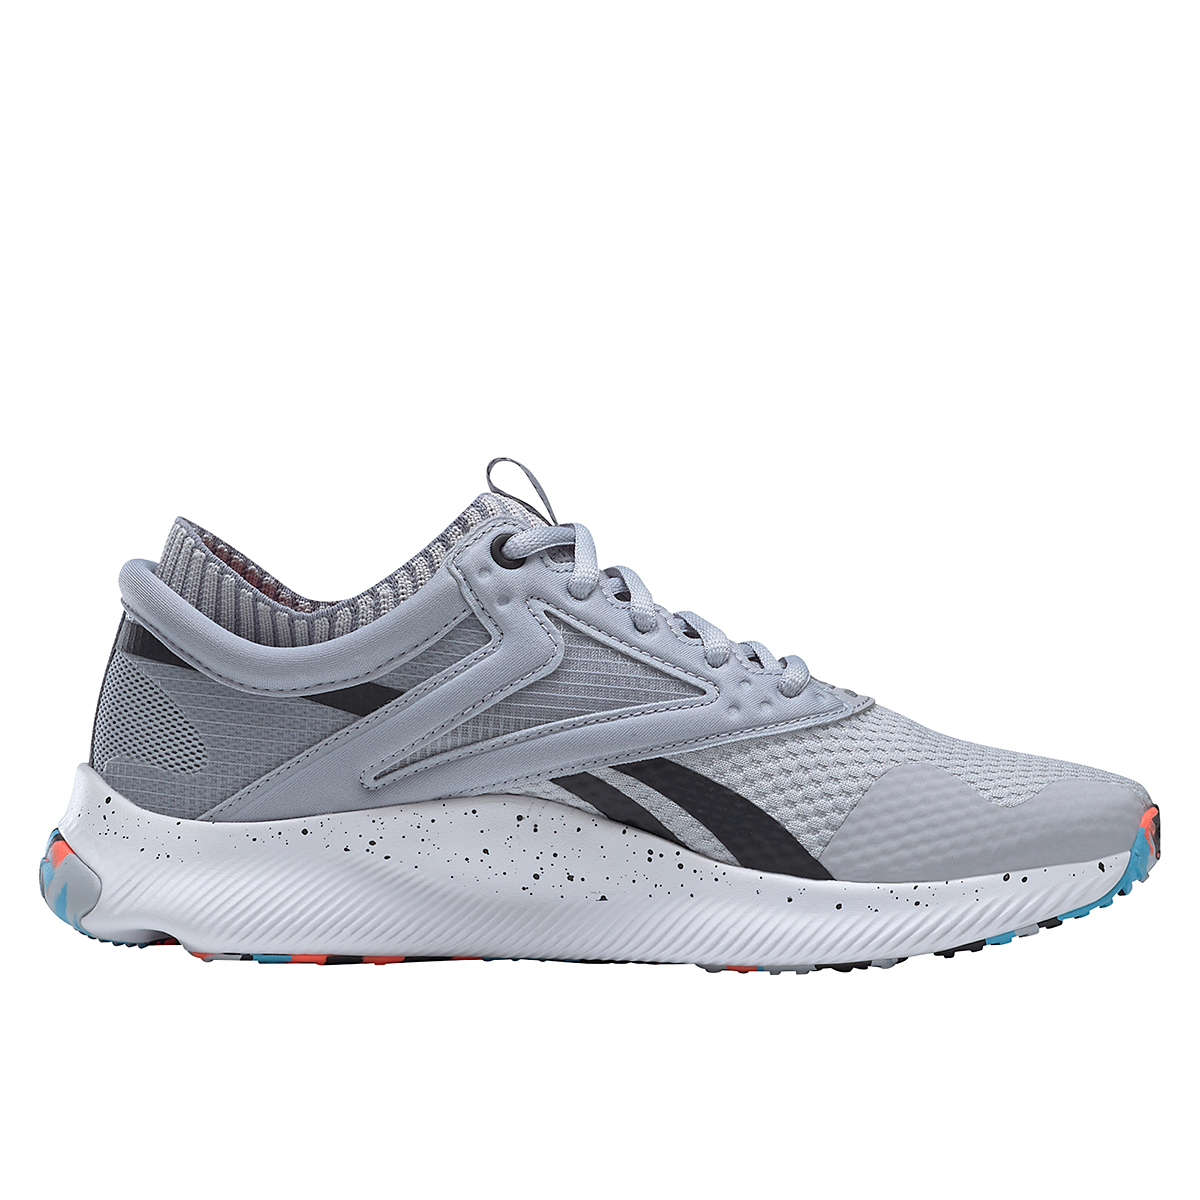 Women's Reebok HIIT TR Training Shoes - Color: Cold Grey 2/Orange Flare /Radiant Aqua - Size: 5 - Width: Regular, Cold Grey 2/Orange Flare /Radiant Aqua, large, image 2